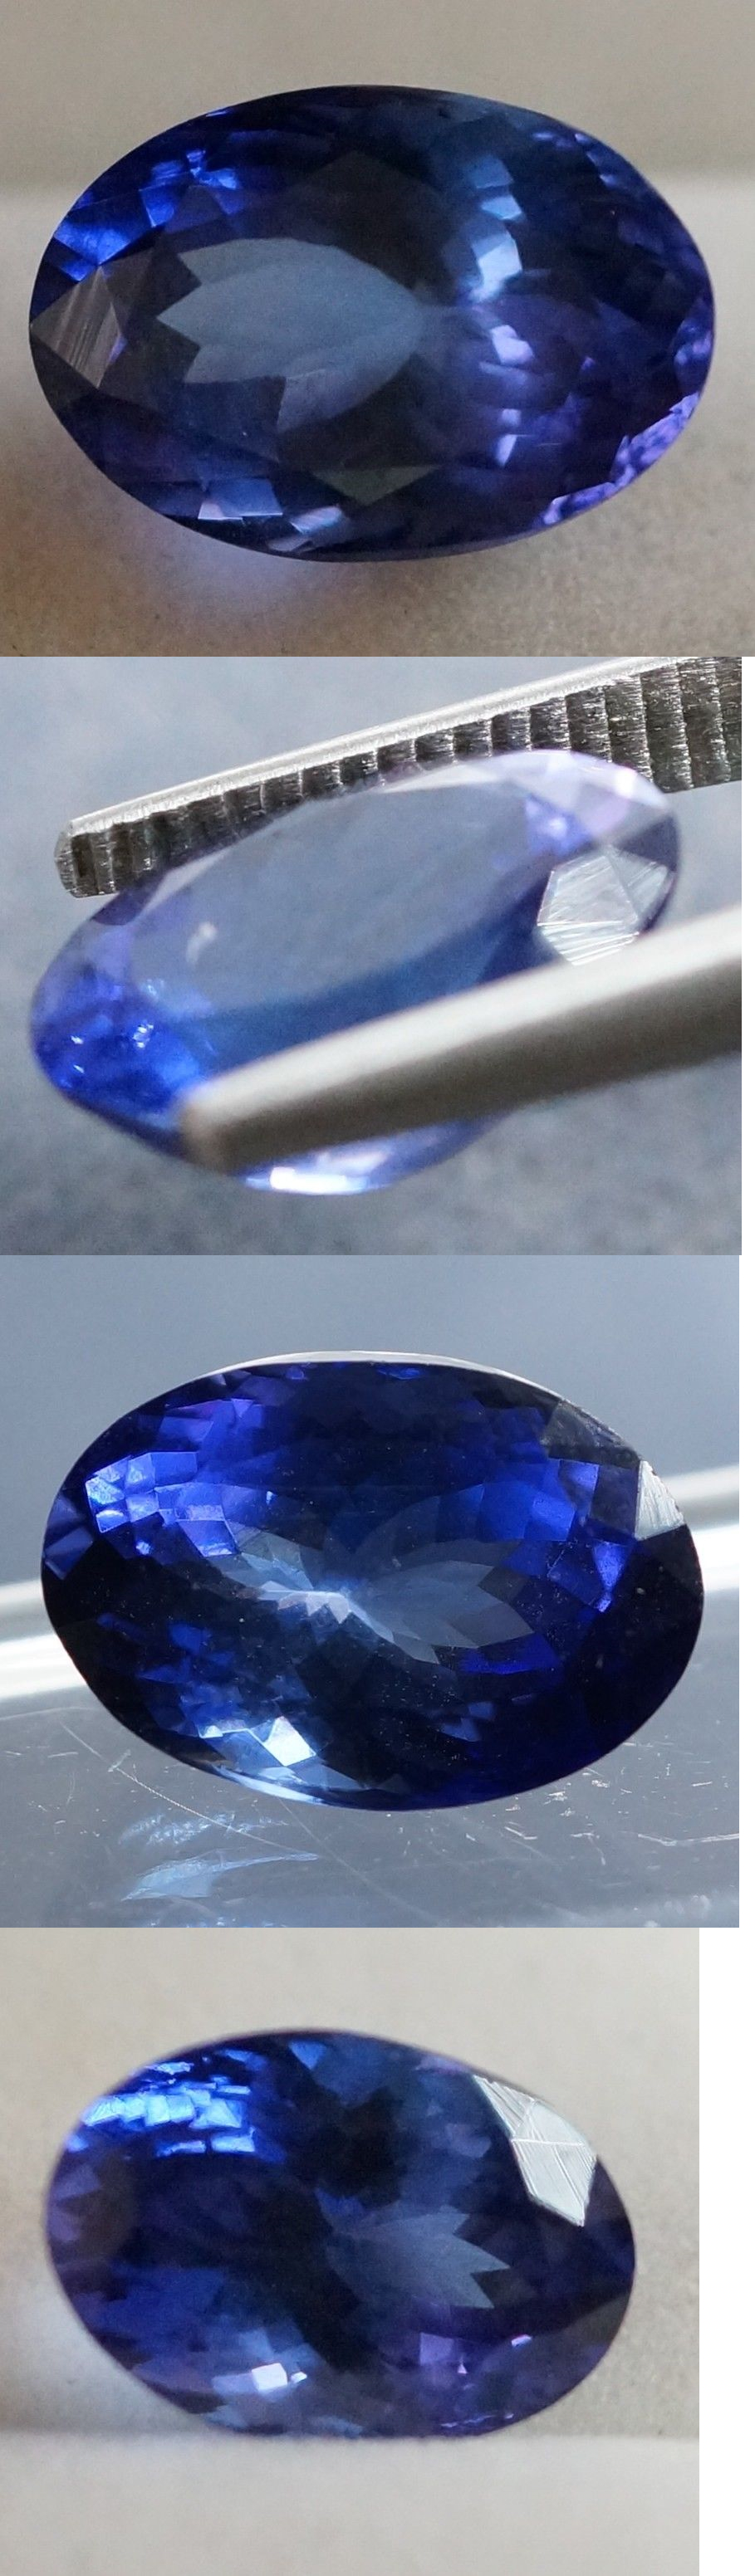 top natural tanzanite grade cabs cabochons investment shade in